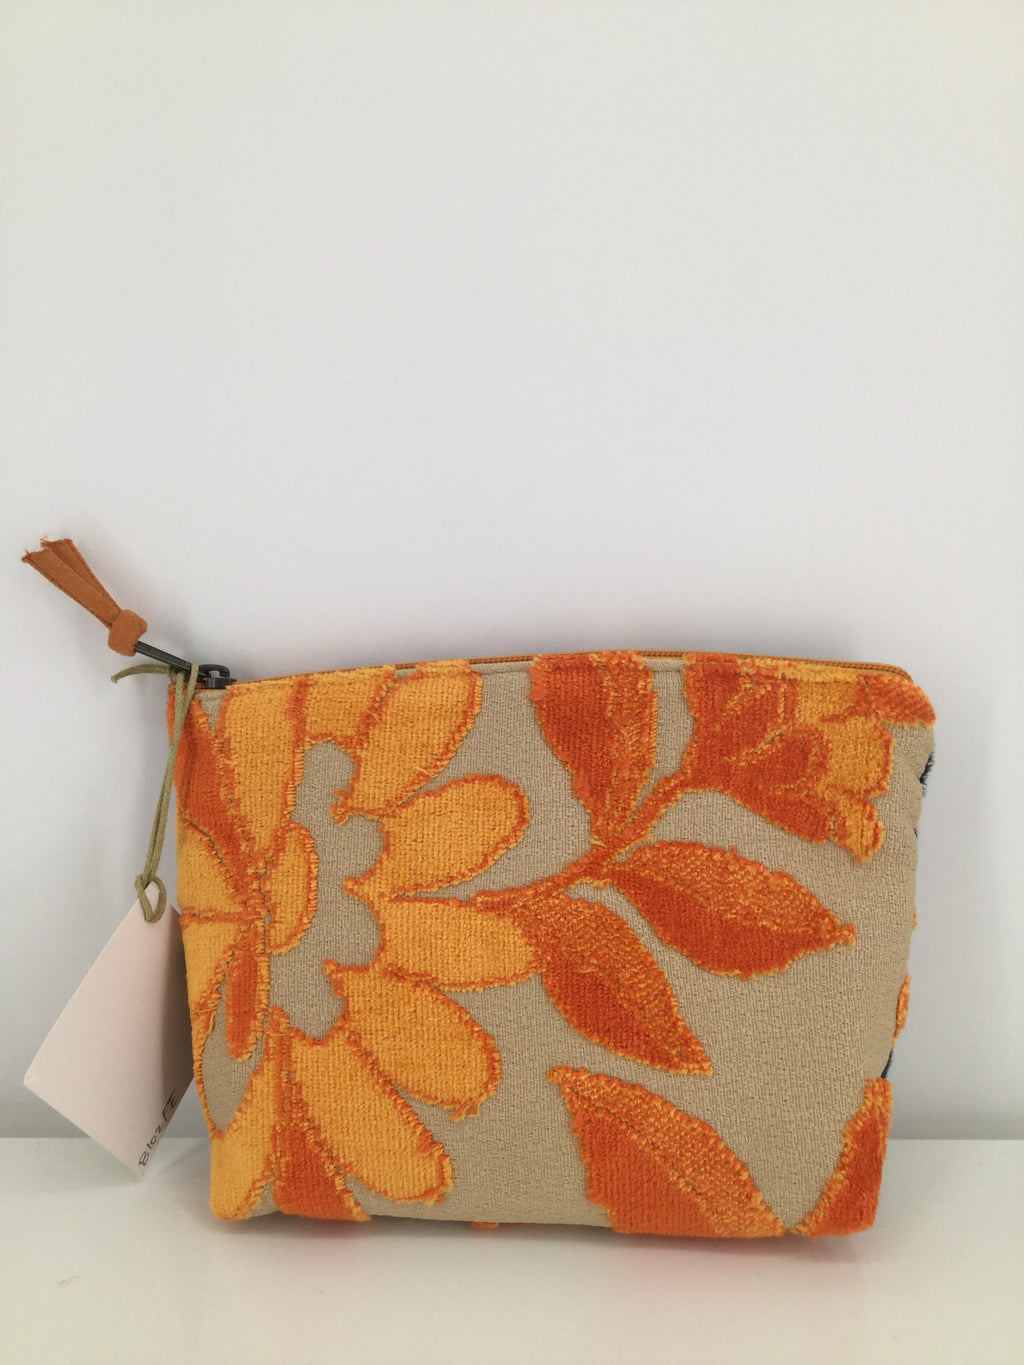 Ateni Makeup Bag NWT